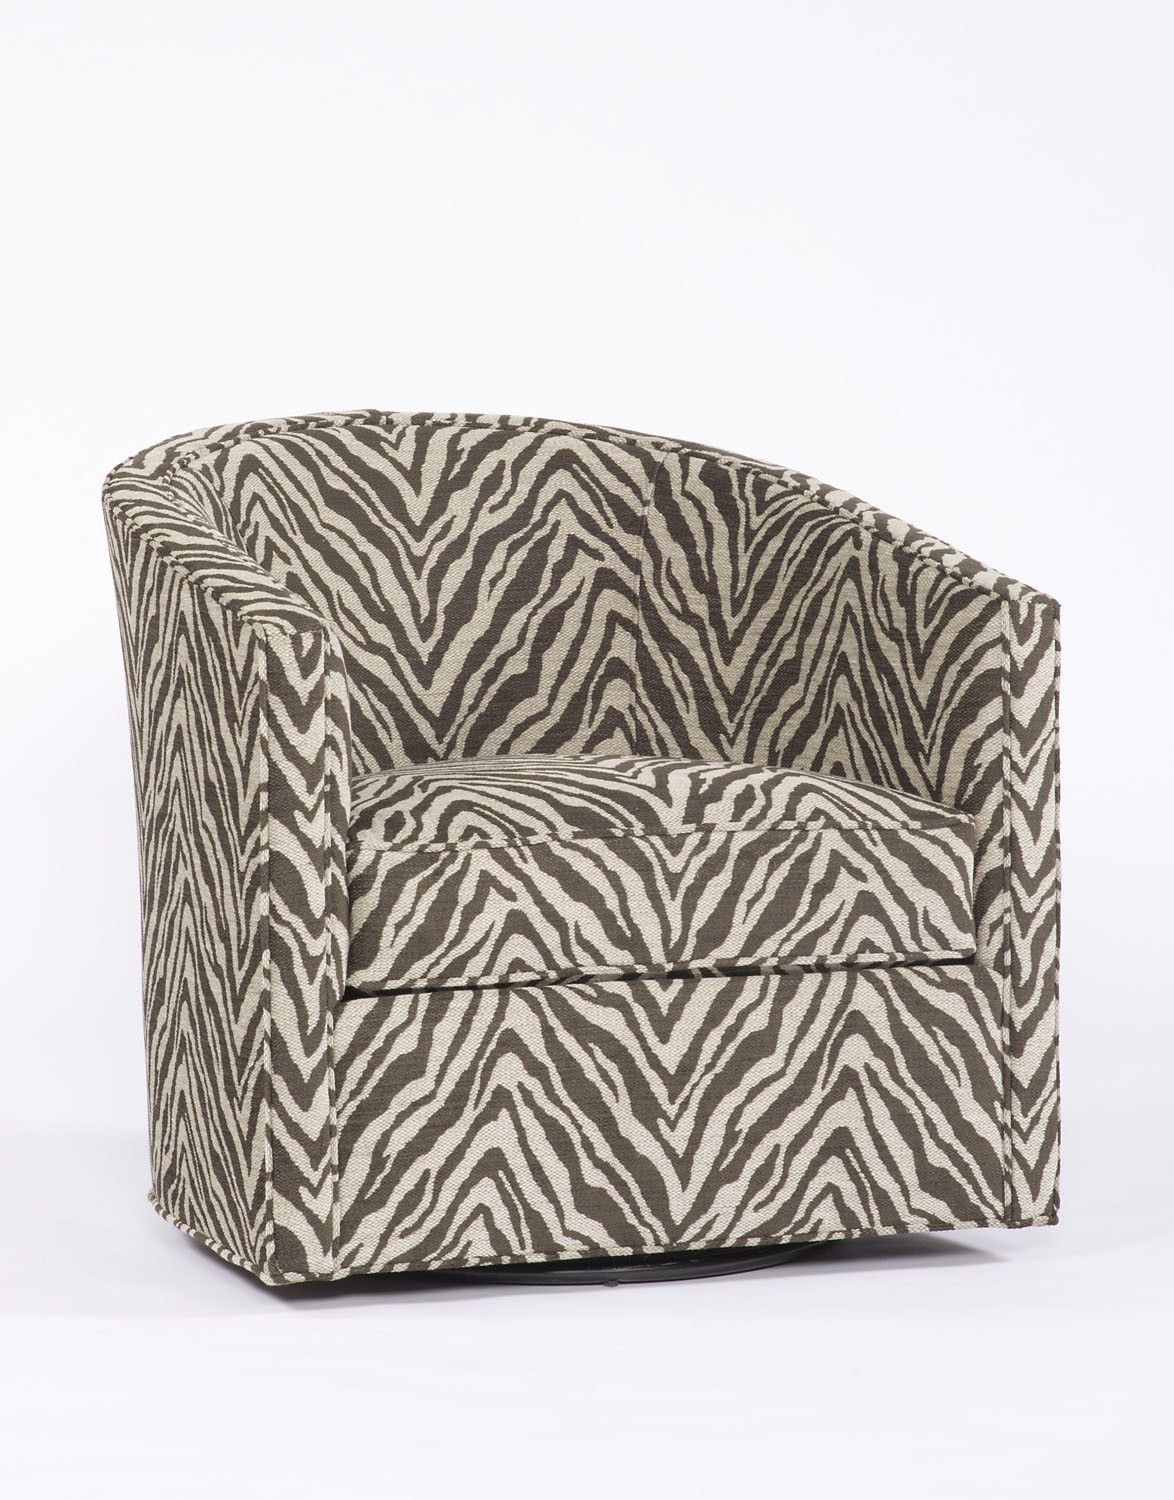 Transitions Sadie Barrel Chair | Products | Pinterest | Products With Regard To Sadie Ii Swivel Accent Chairs (View 7 of 25)